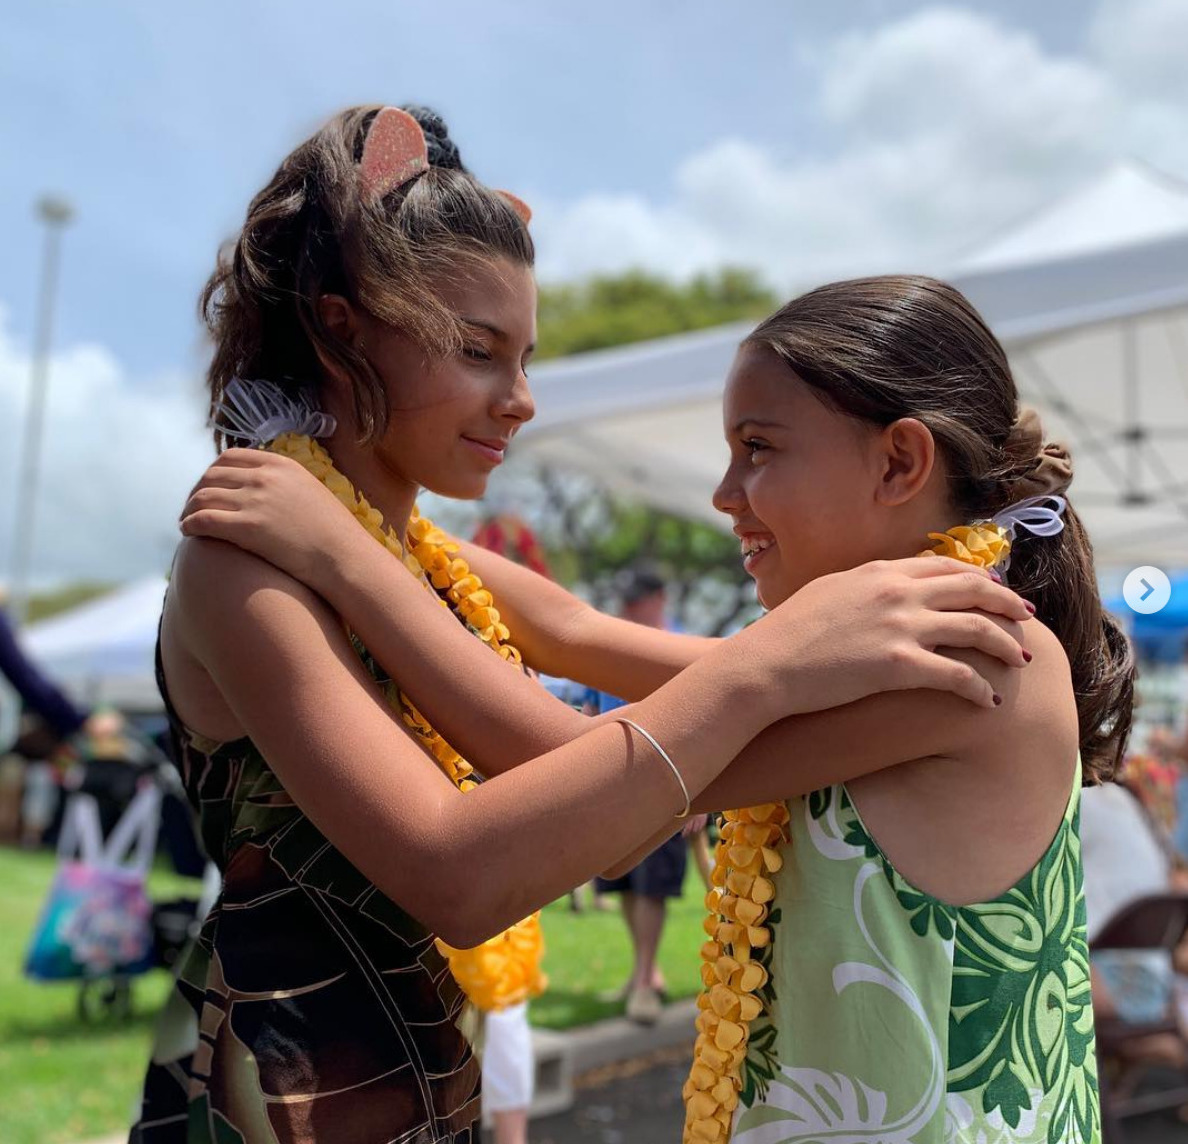 Screenshot_2019-05-04 Reagan and Brianna ( maui_ukulele_sisters) • Instagram photos and videos(1).jpg